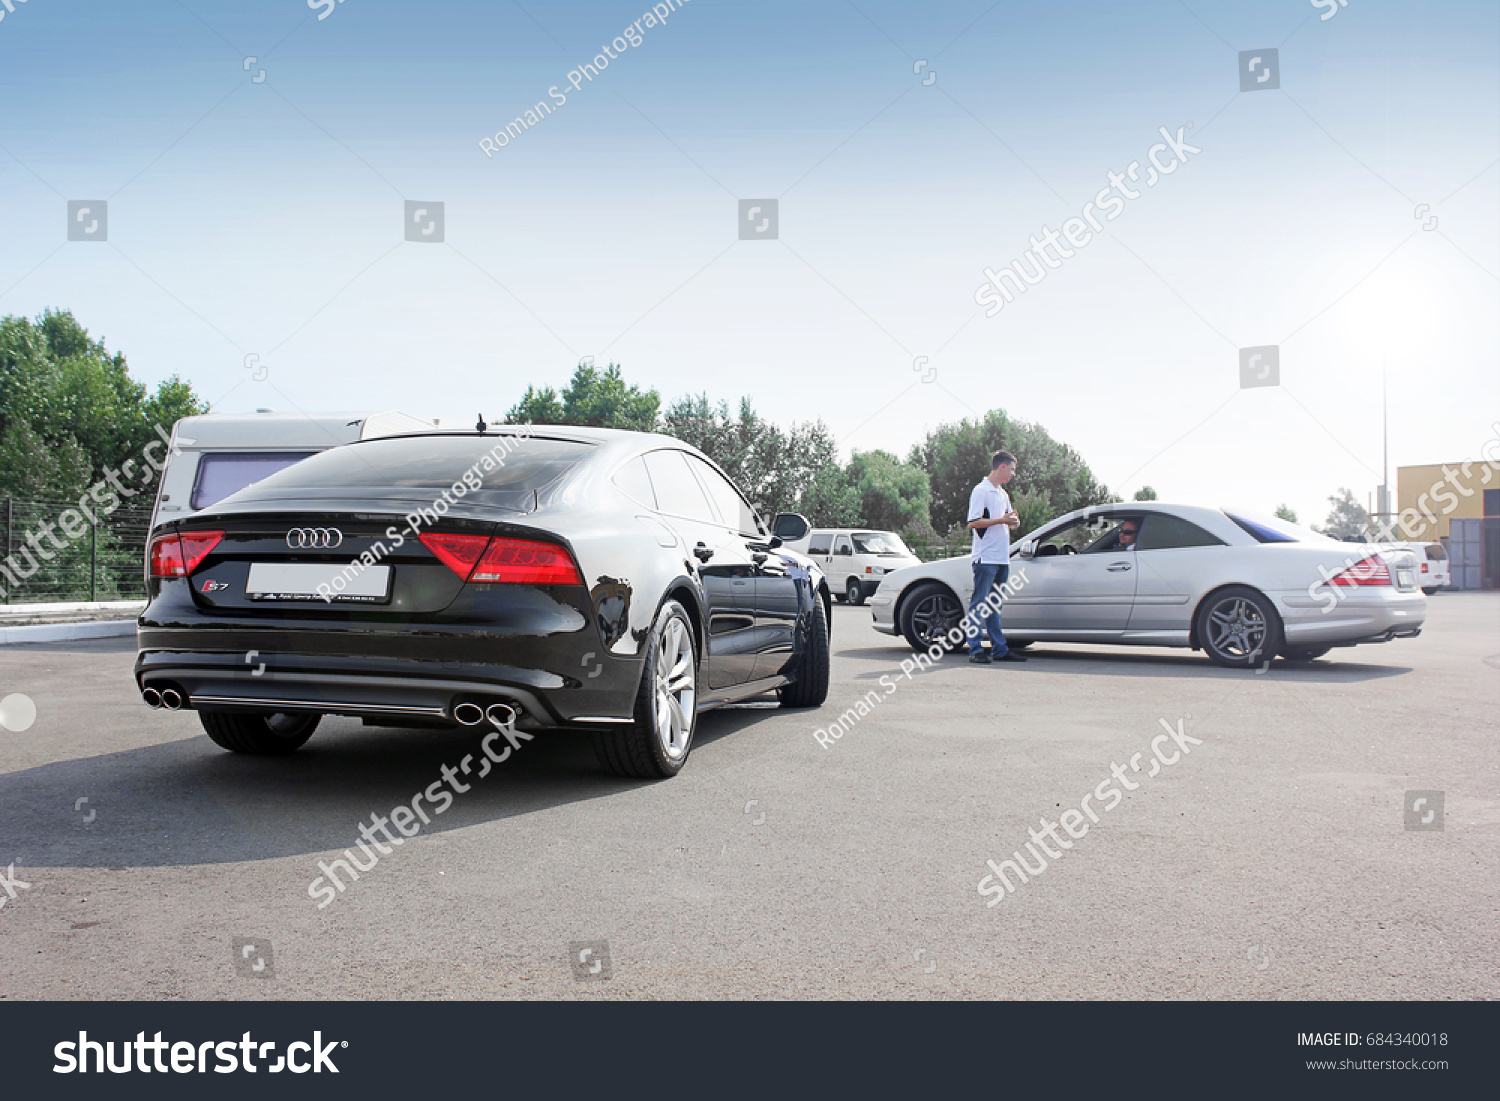 Mercedes CL 55 AMG Audi S 7 Stock Photo (Edit Now)- Shutterstock